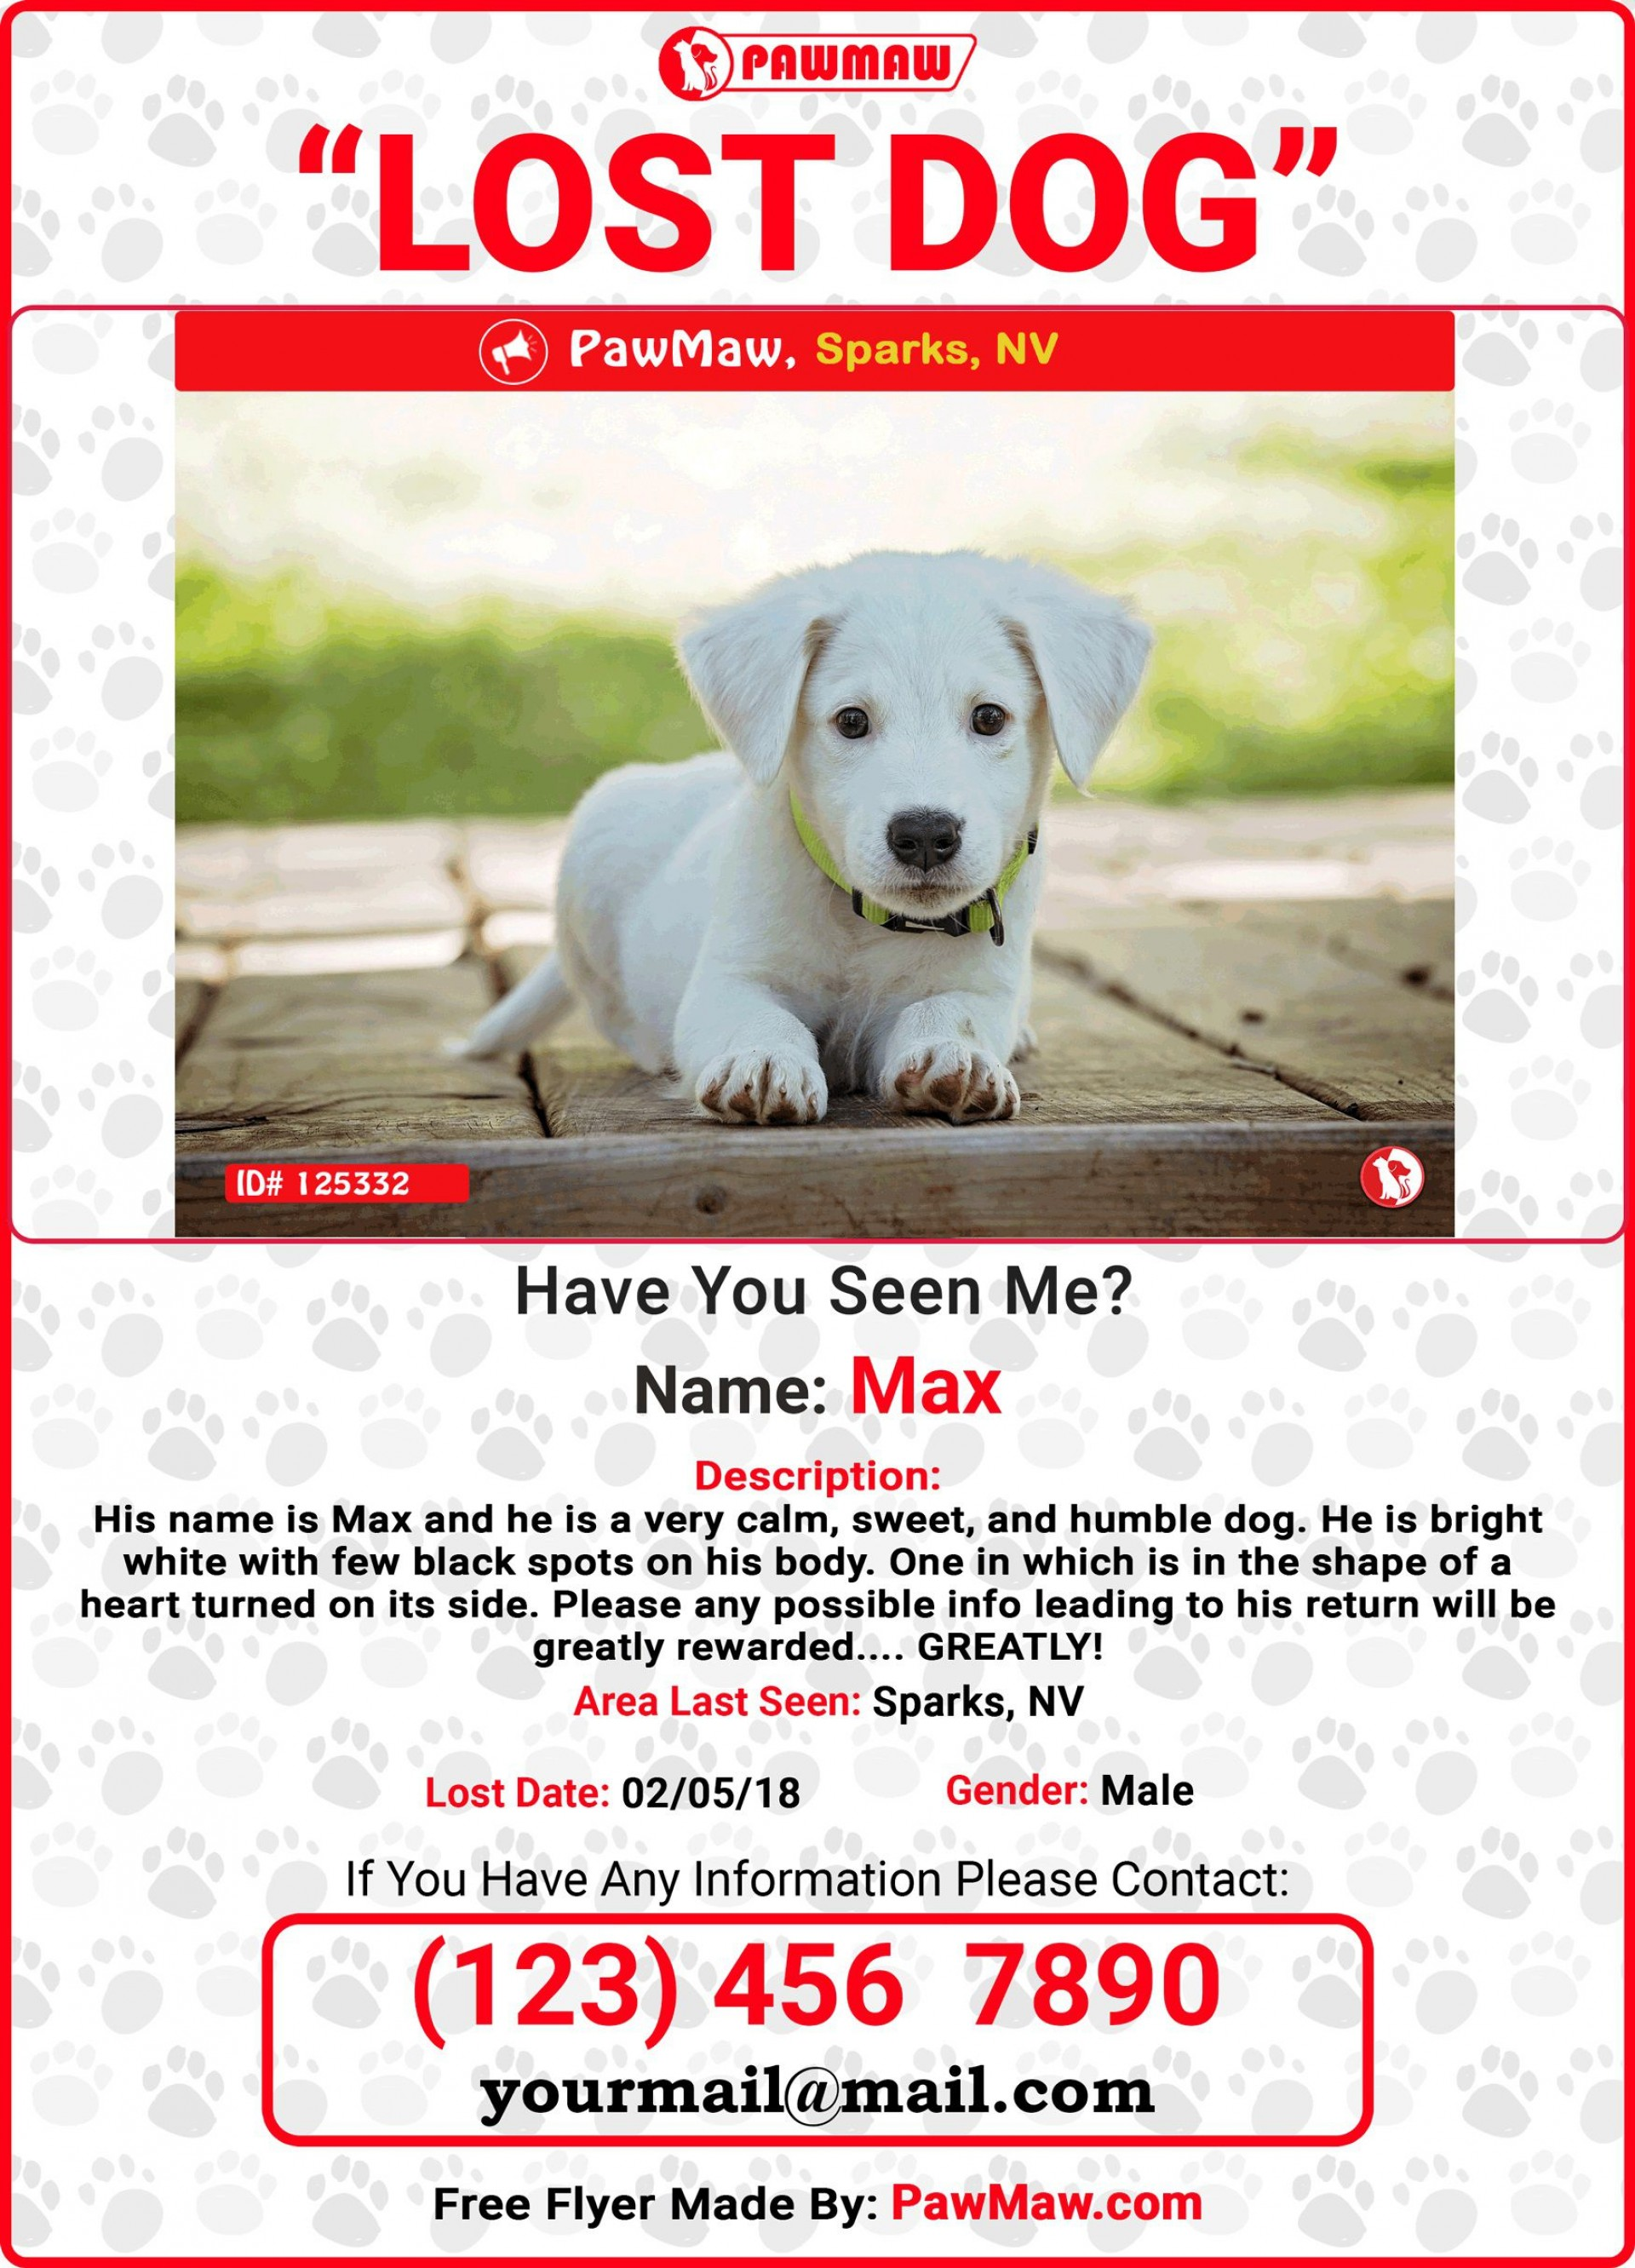 005 Stunning Lost Pet Flyer Template High Def  Word1920